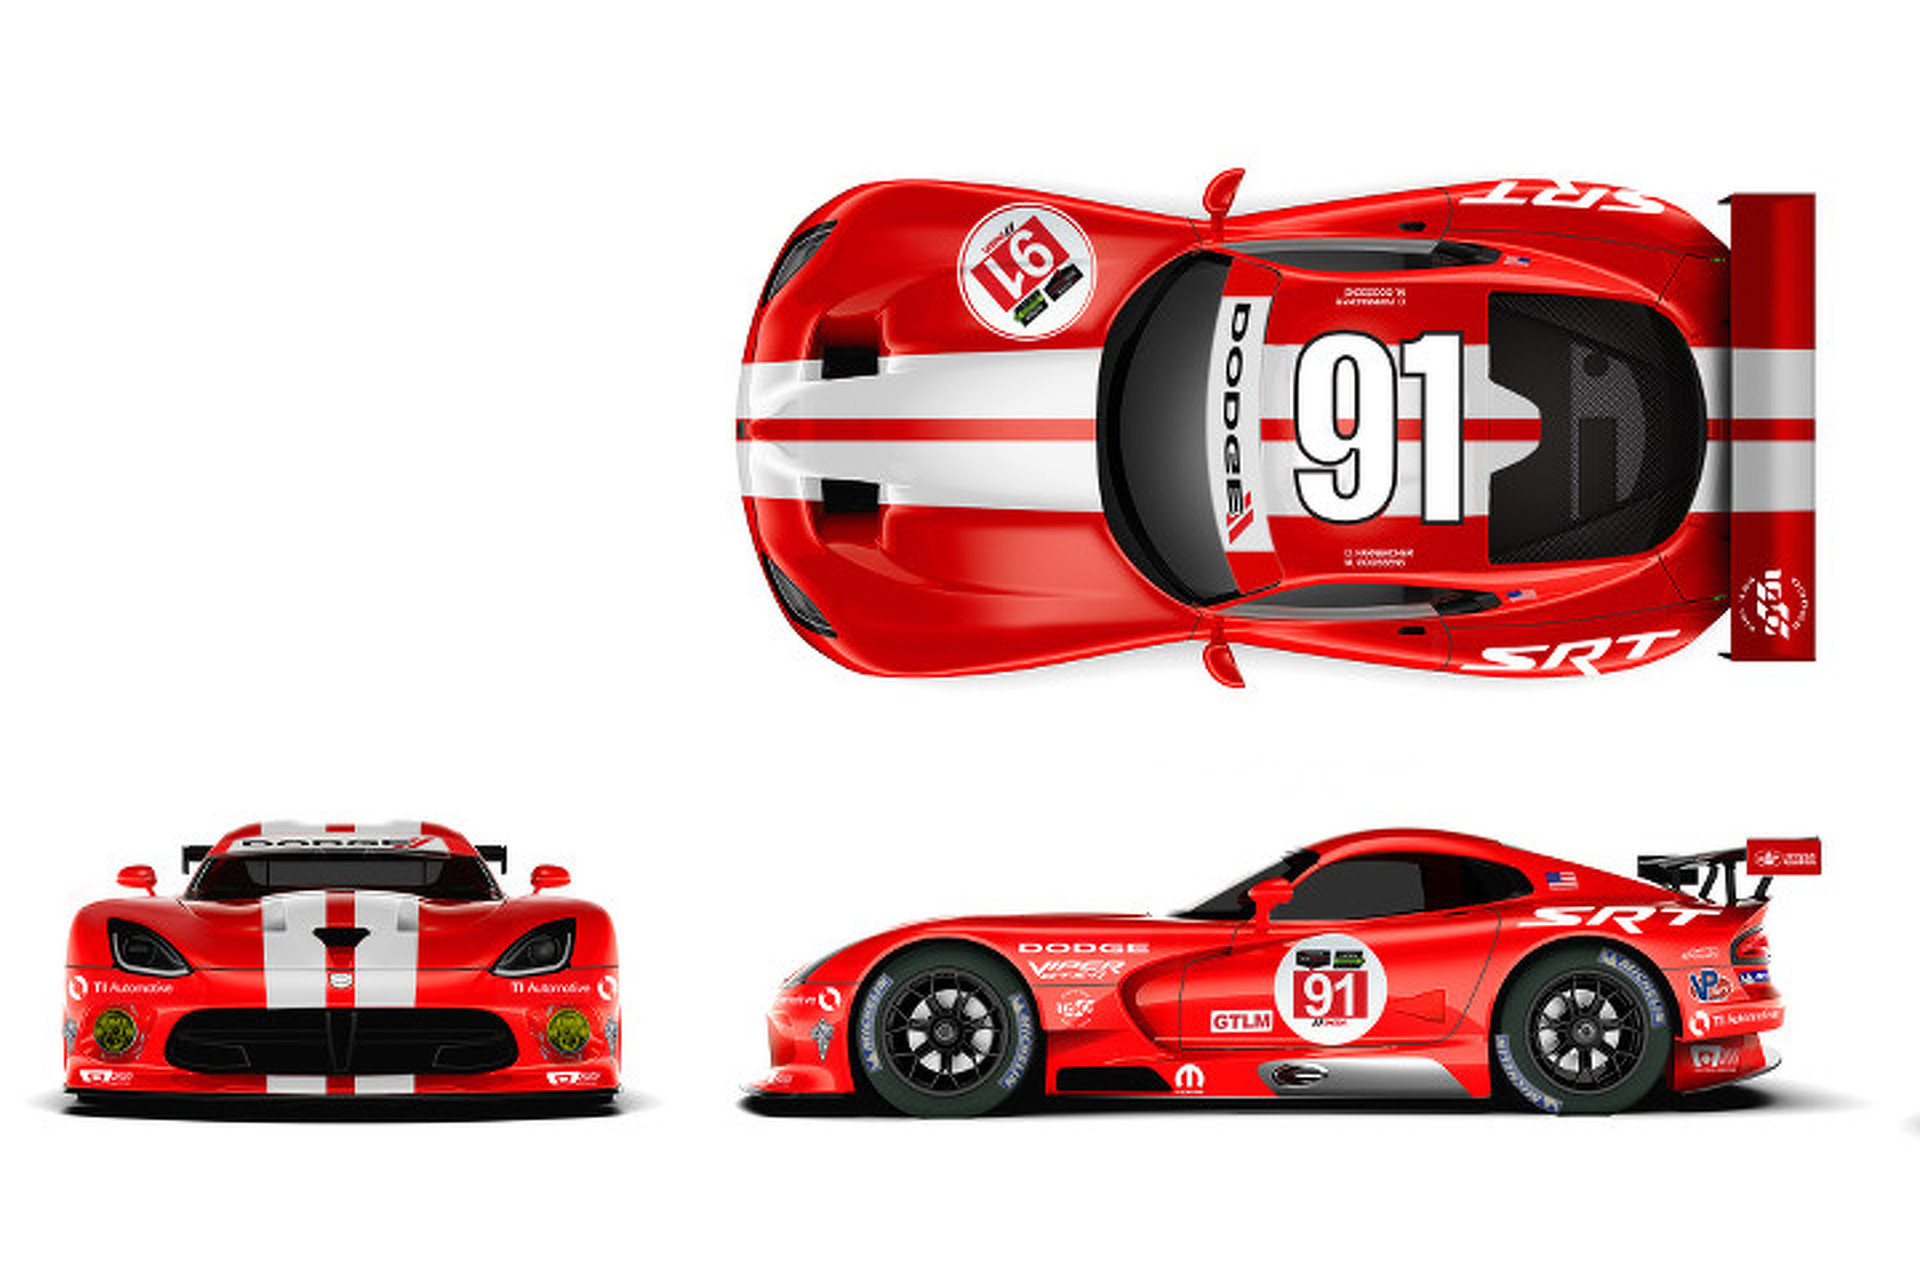 Viper Racing Team Looks to Past with New Red-and-White Livery [Video]